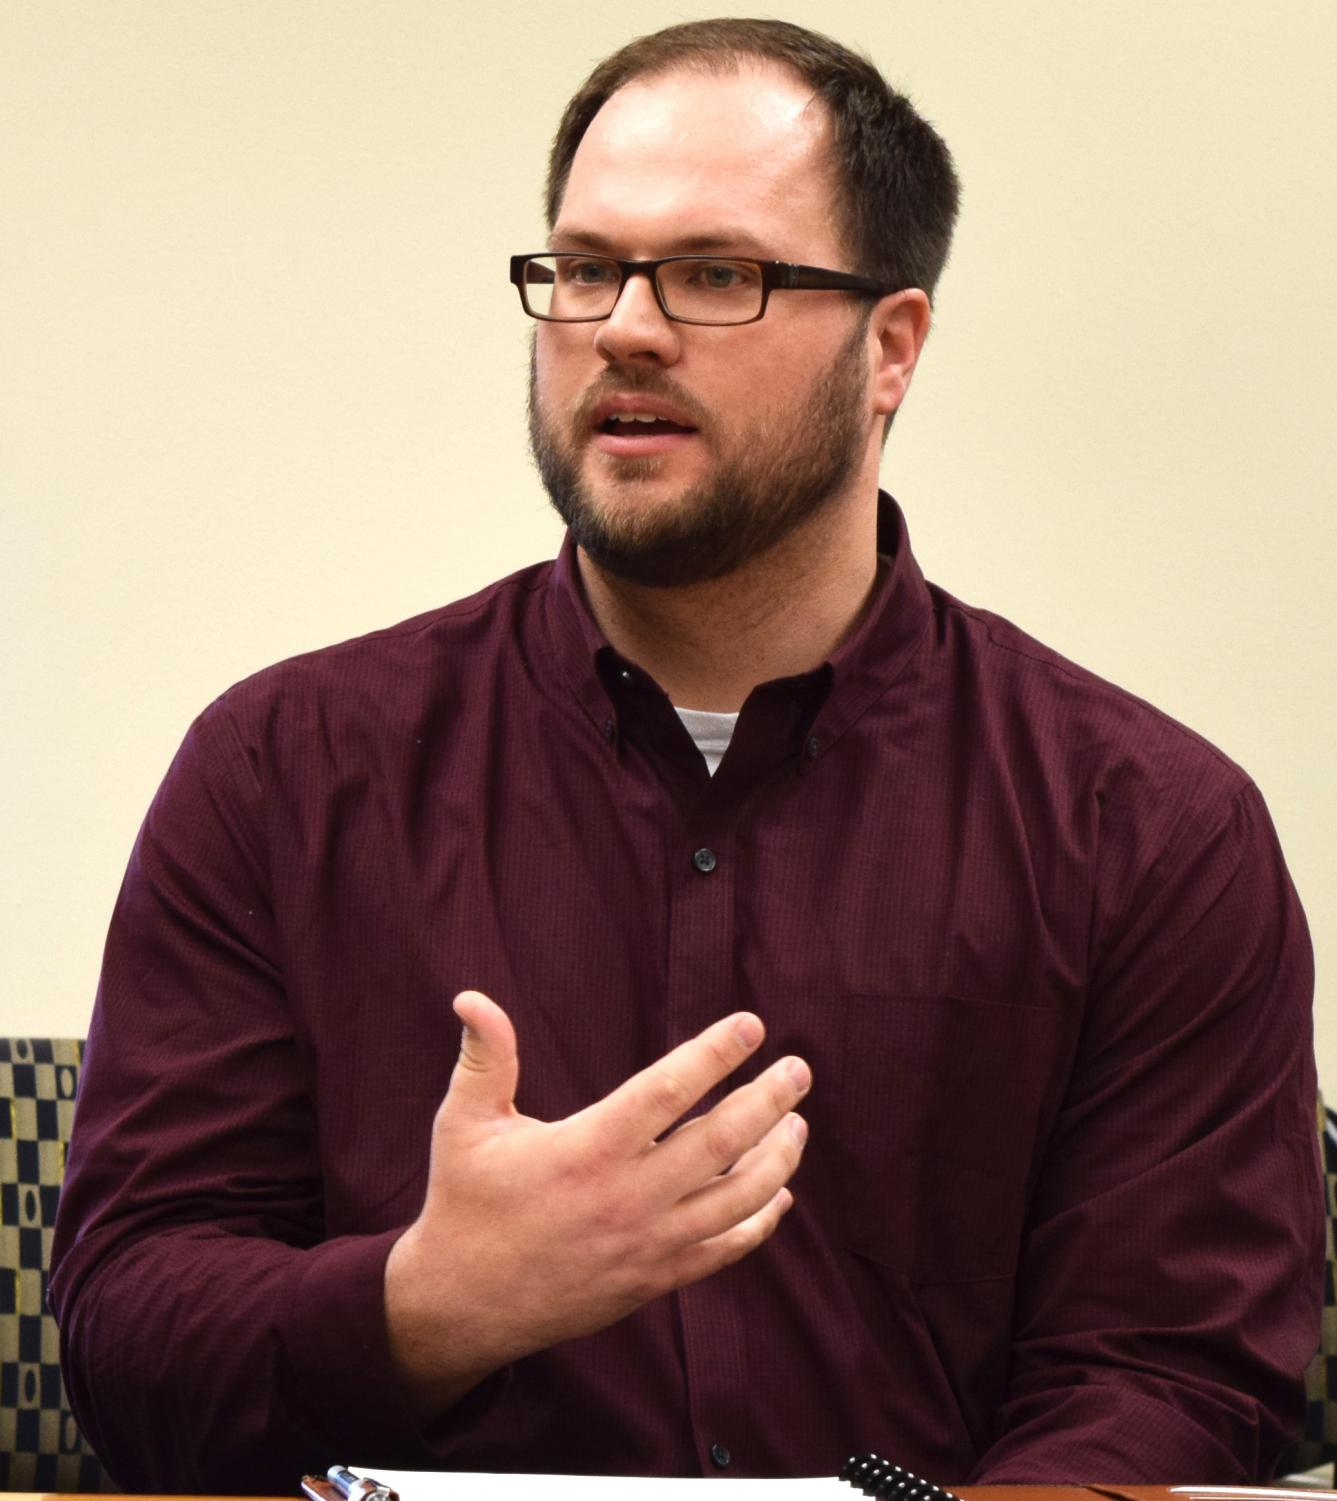 Joshua Awalt is the interim associate V.P for Information Technology Services. He said his department is working hard to prepare for the campus-wide switch from Banner 8 to Banner 9, dealing with academic partnership, the WiFi on campus and more.